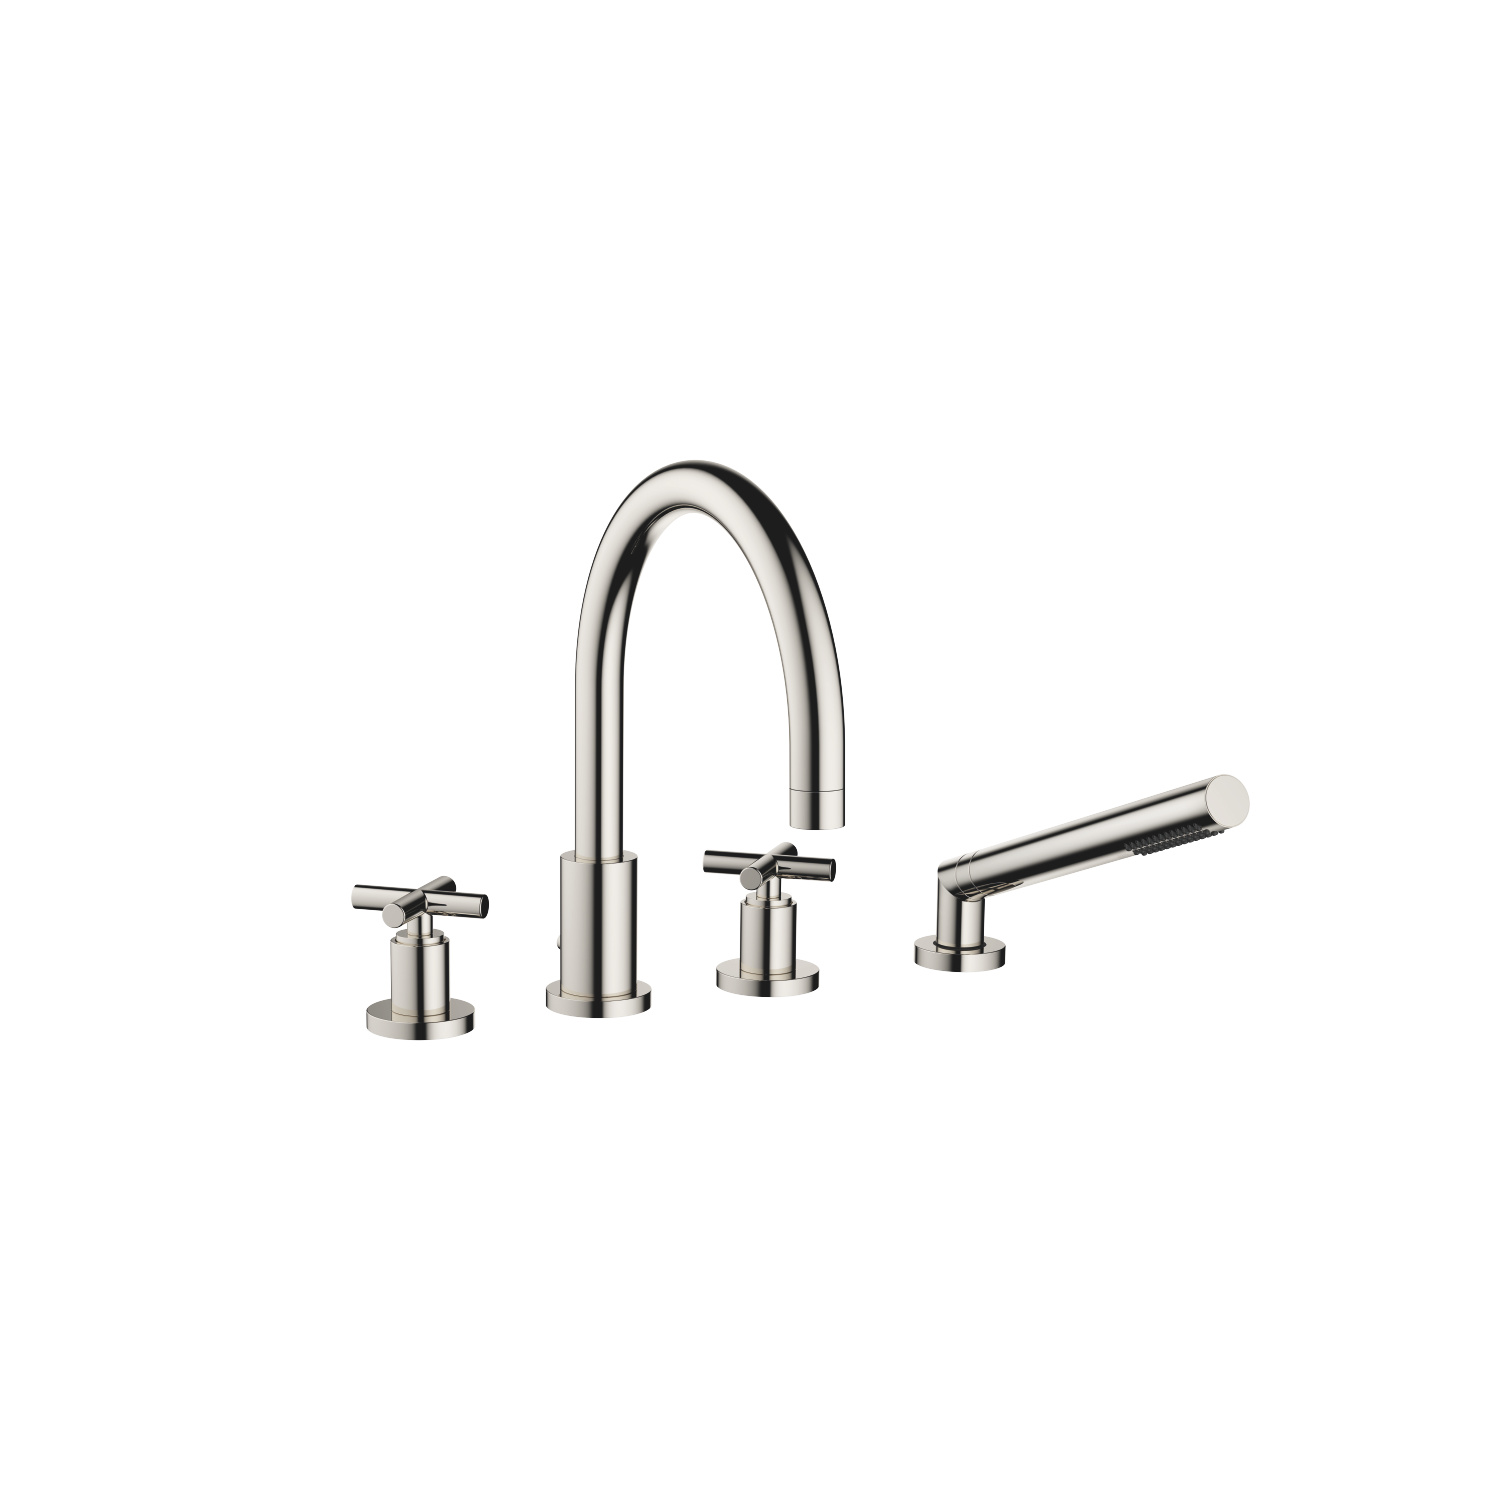 Bath shower set for bath rim or tile edge installation - platinum - 27 512 892-08